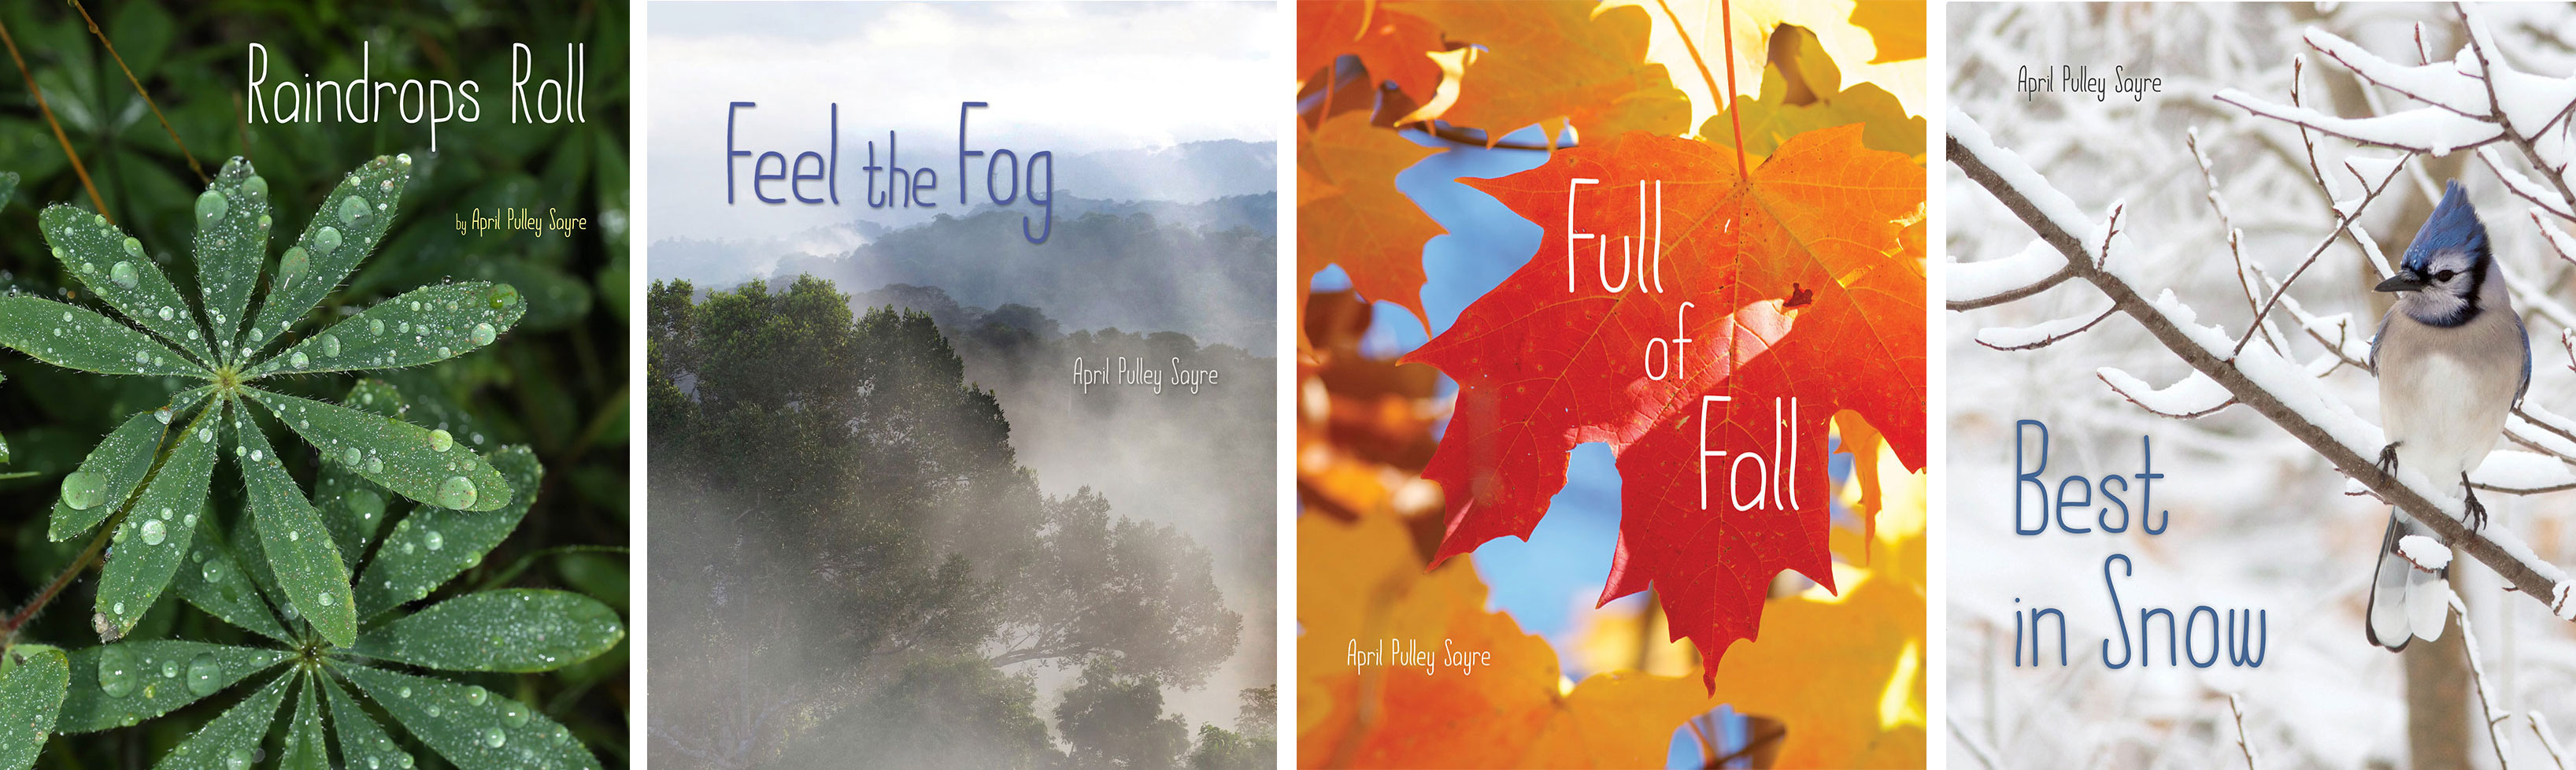 Weather Walks photo books by April Pulley Sayre